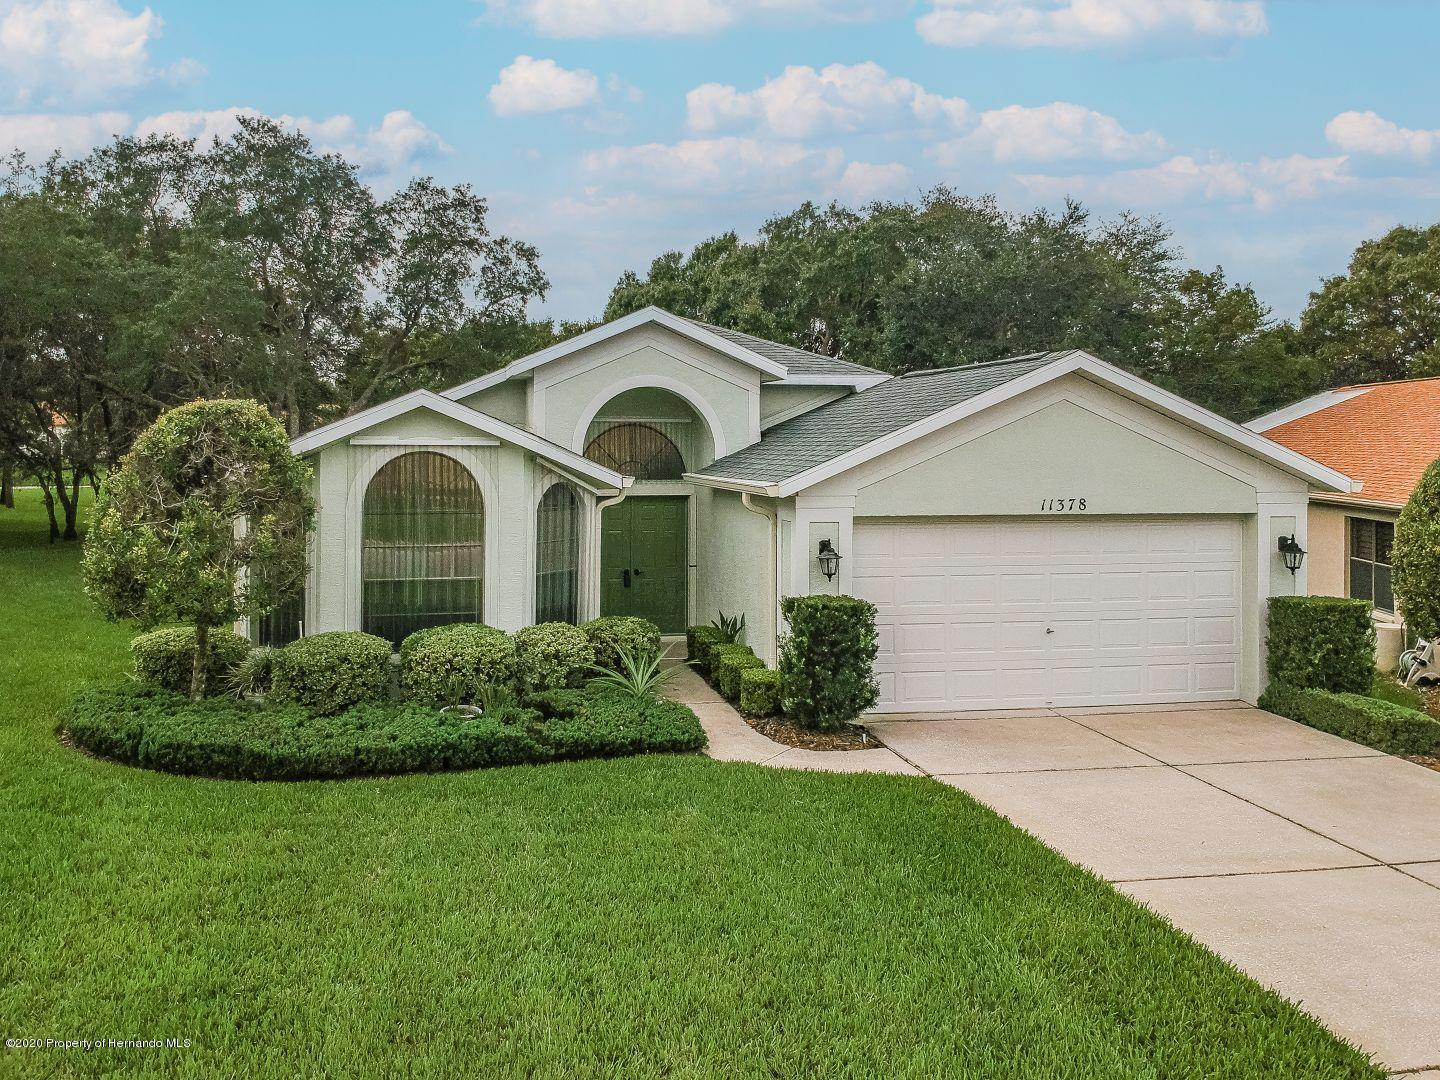 Details for 11378 Deercroft Court, Spring Hill, FL 34609